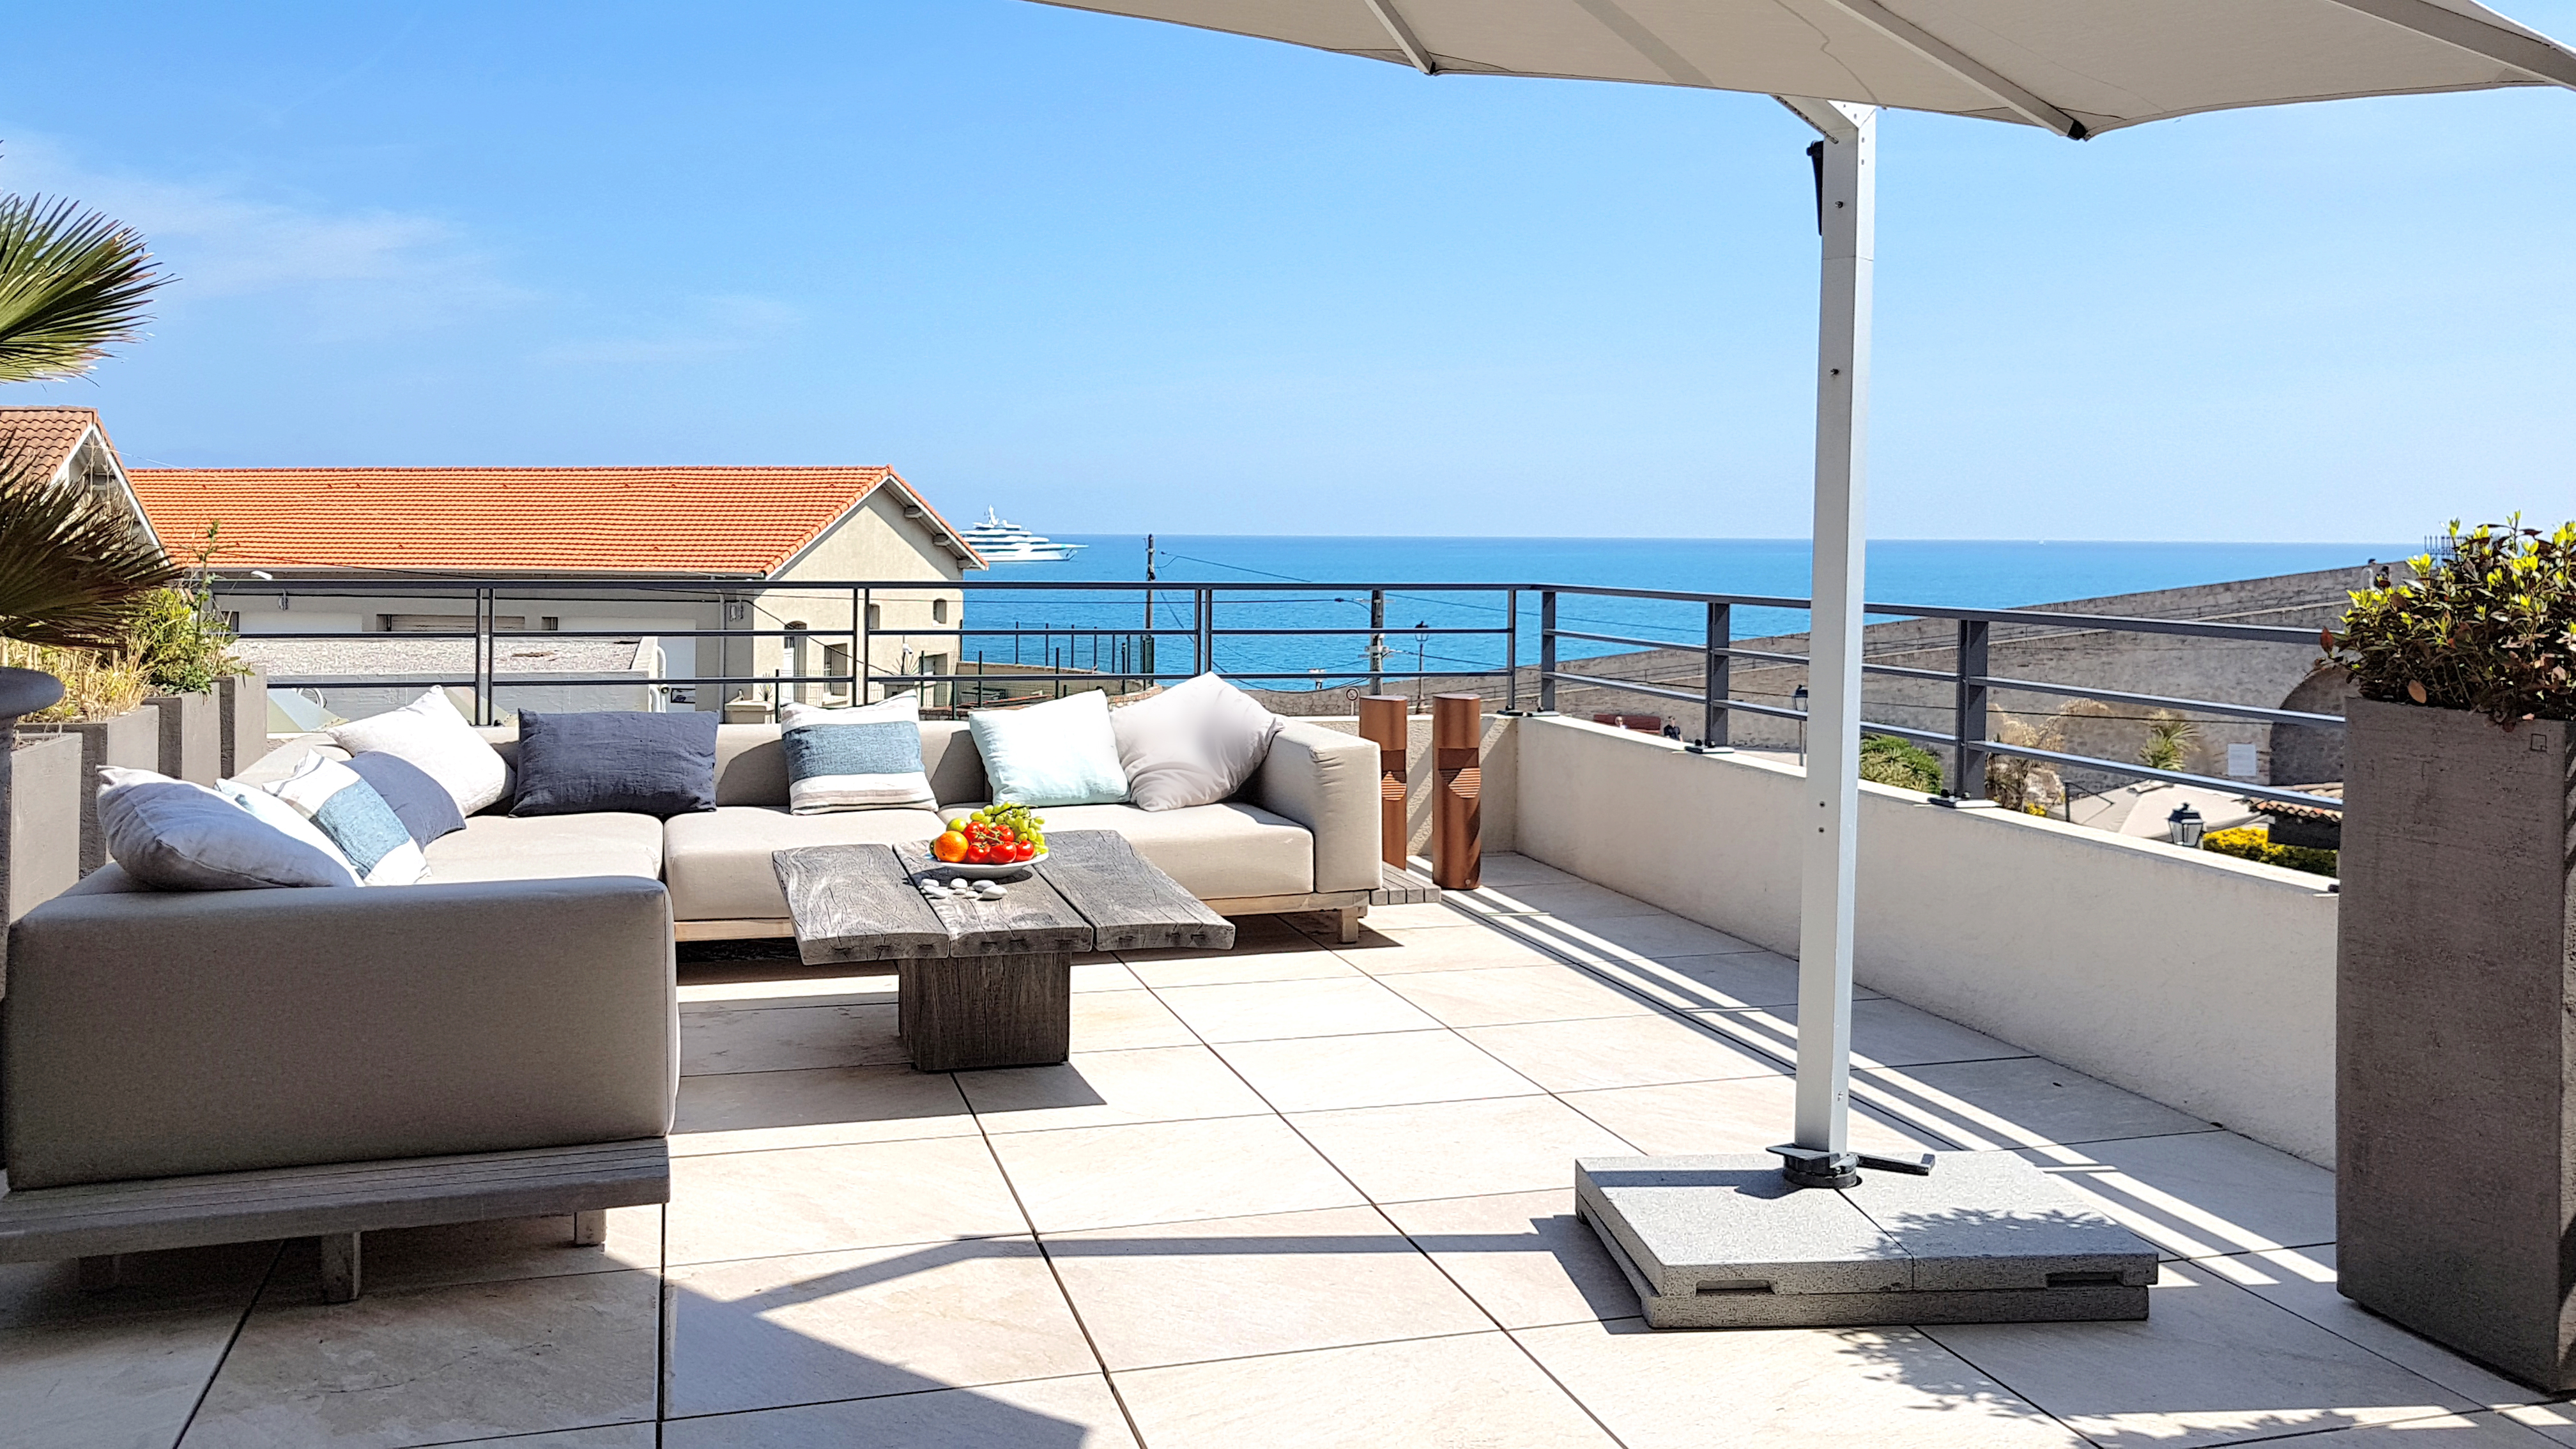 ID R2 3 Bedroom LUXURY Apt. with 70 m2 terrace and SEA VIEWS in ...